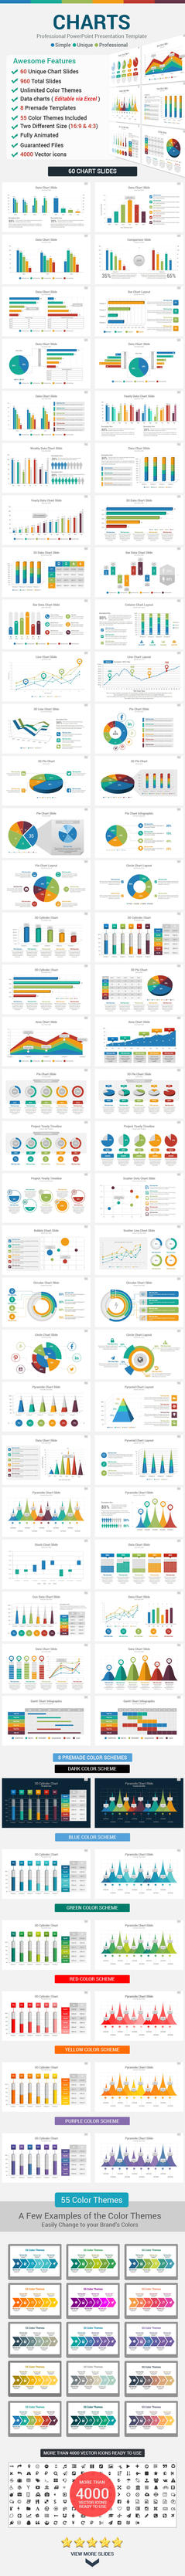 Data Charts PowerPoint Presentation Template by yekpix